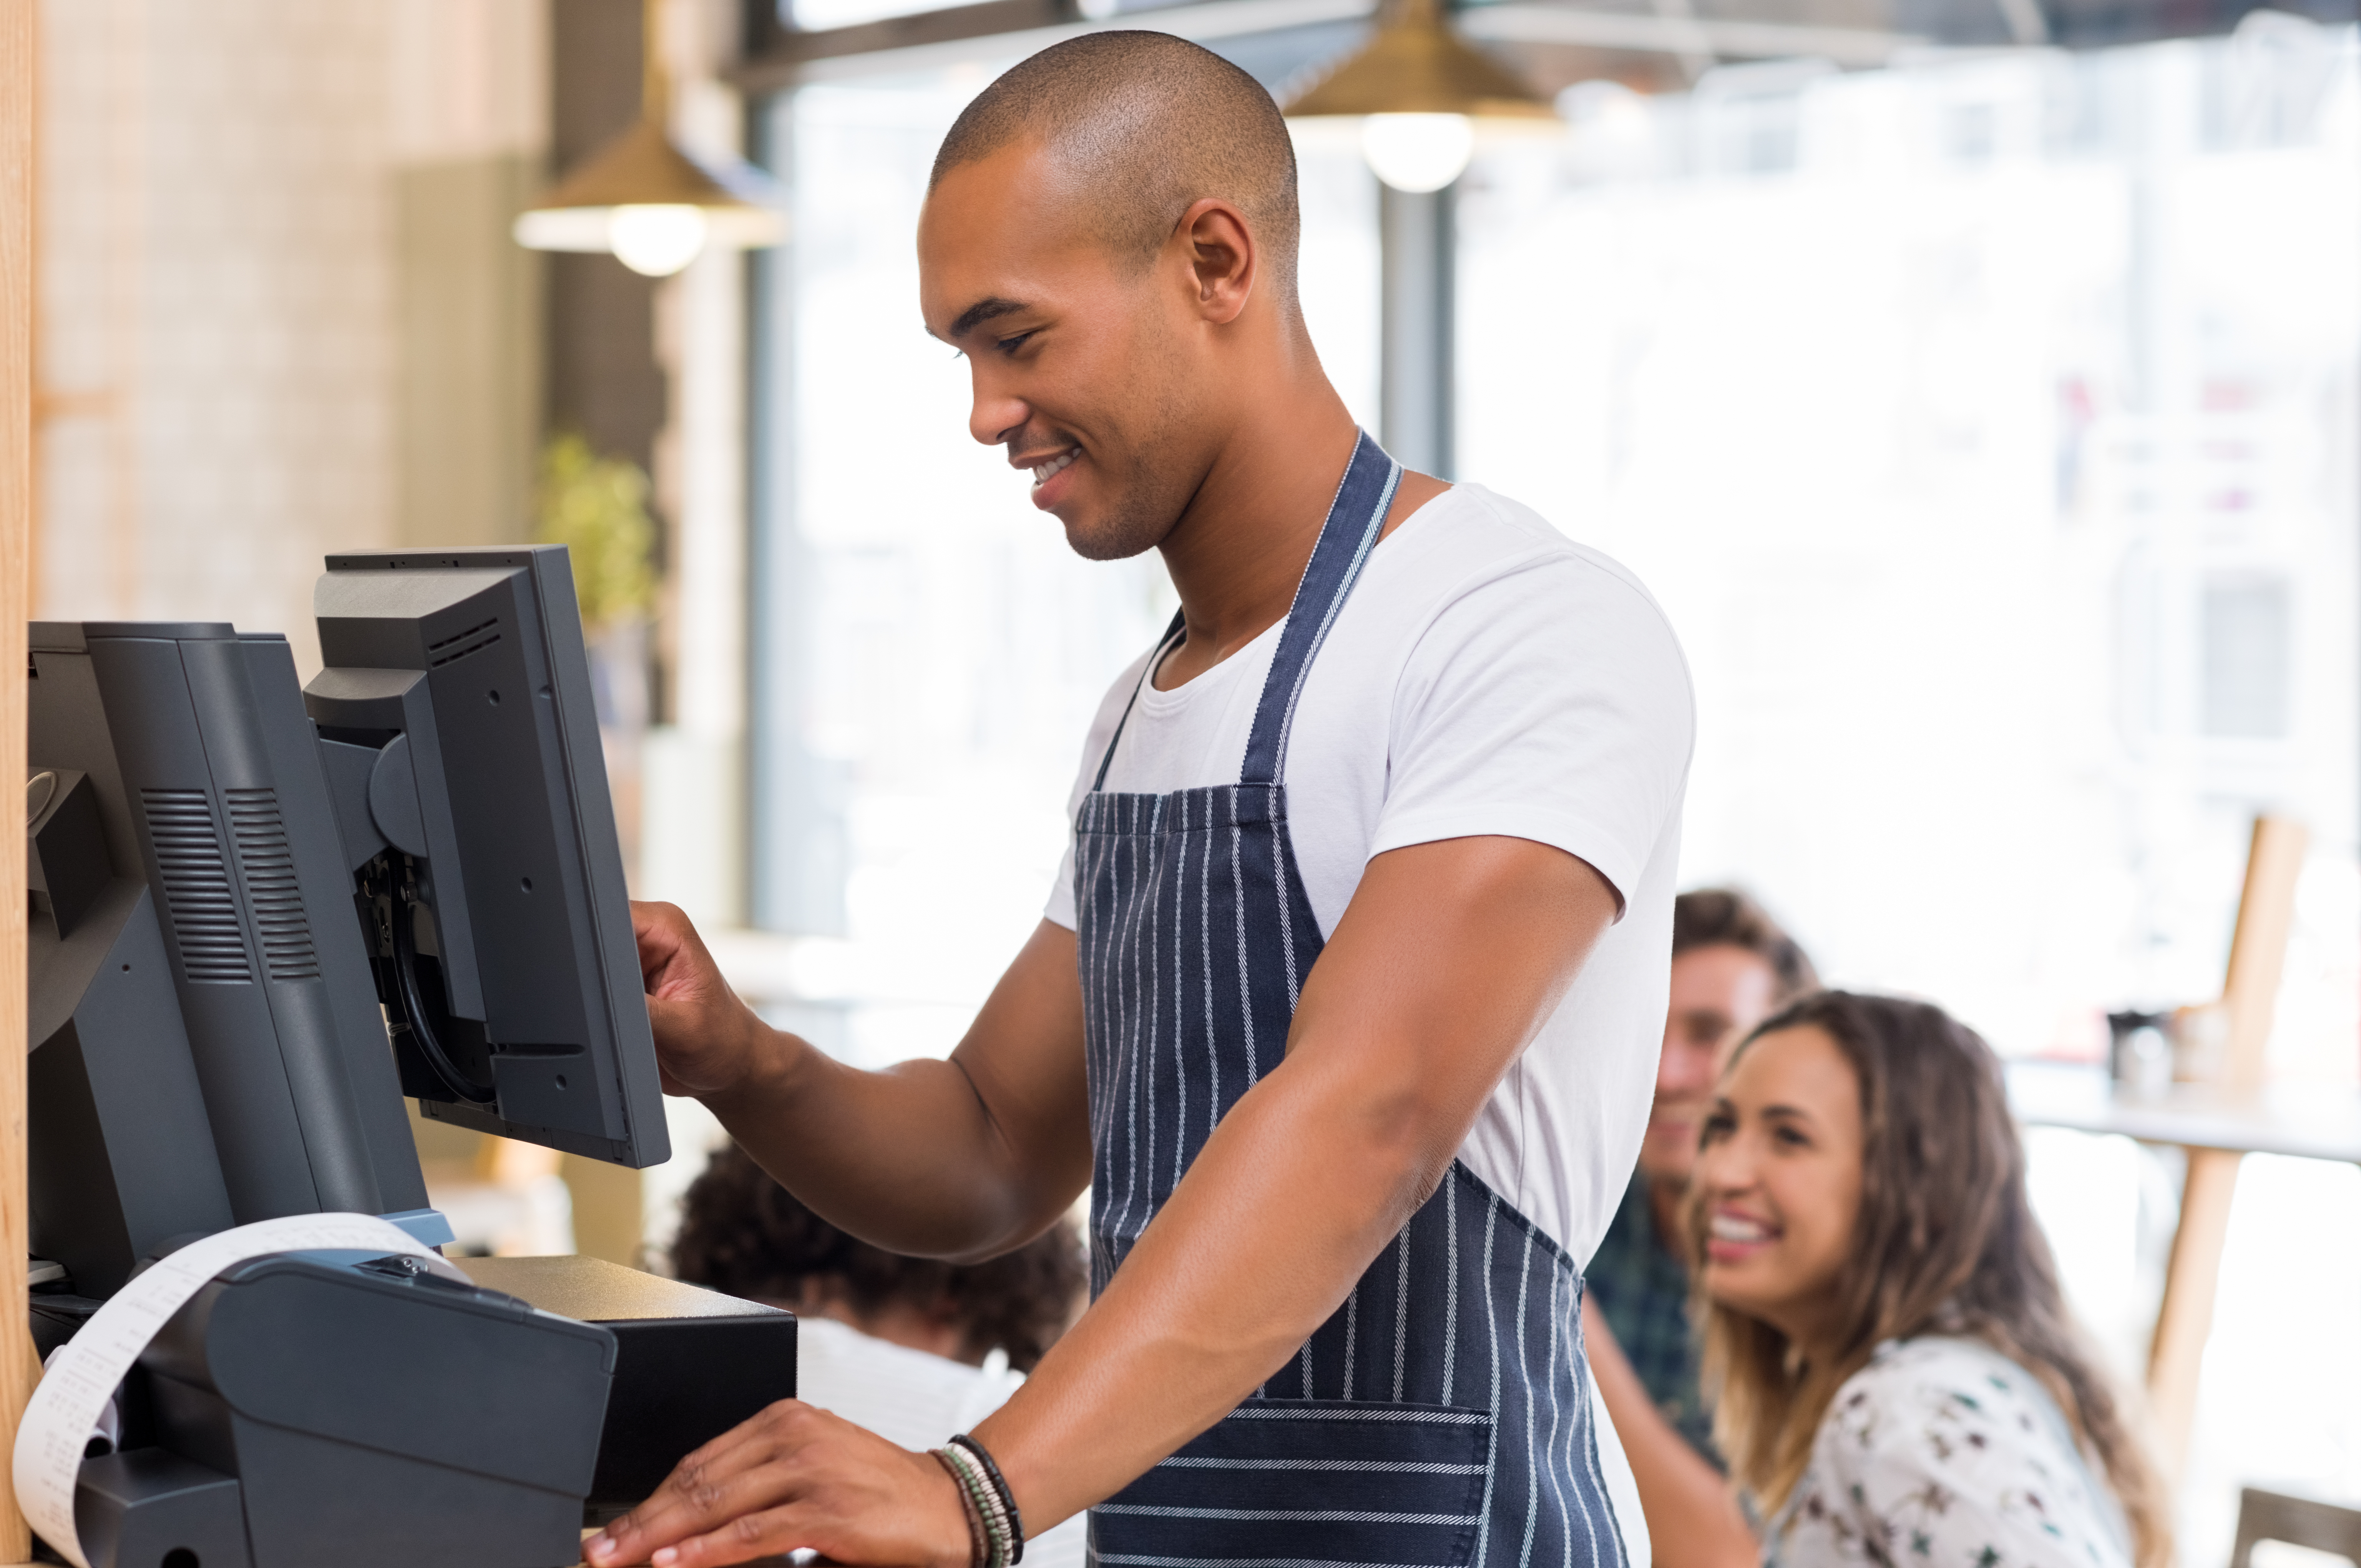 bigstock-Happy-young-waiter-in-blue-apr-147815501 (1)